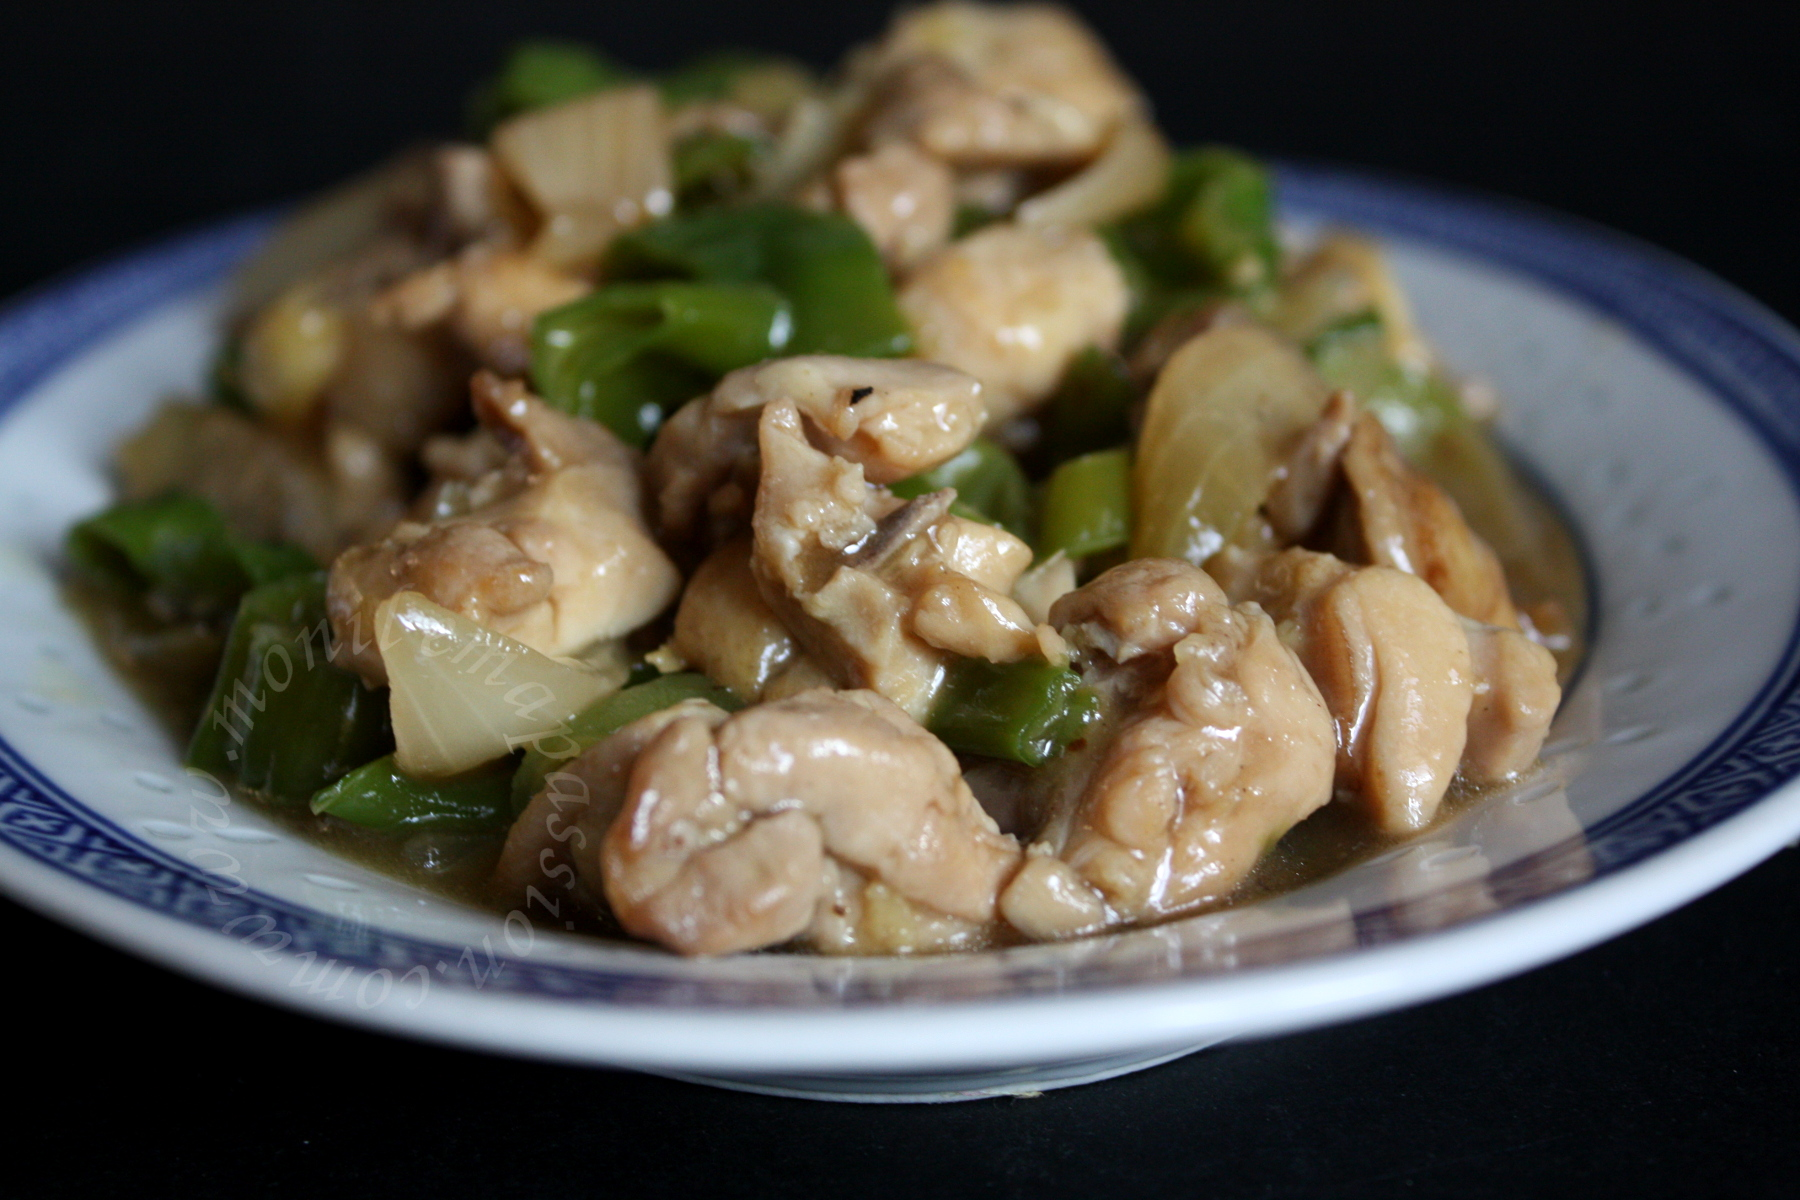 Poulet gros piments - Green sweet chili peppers and chicken stir fry